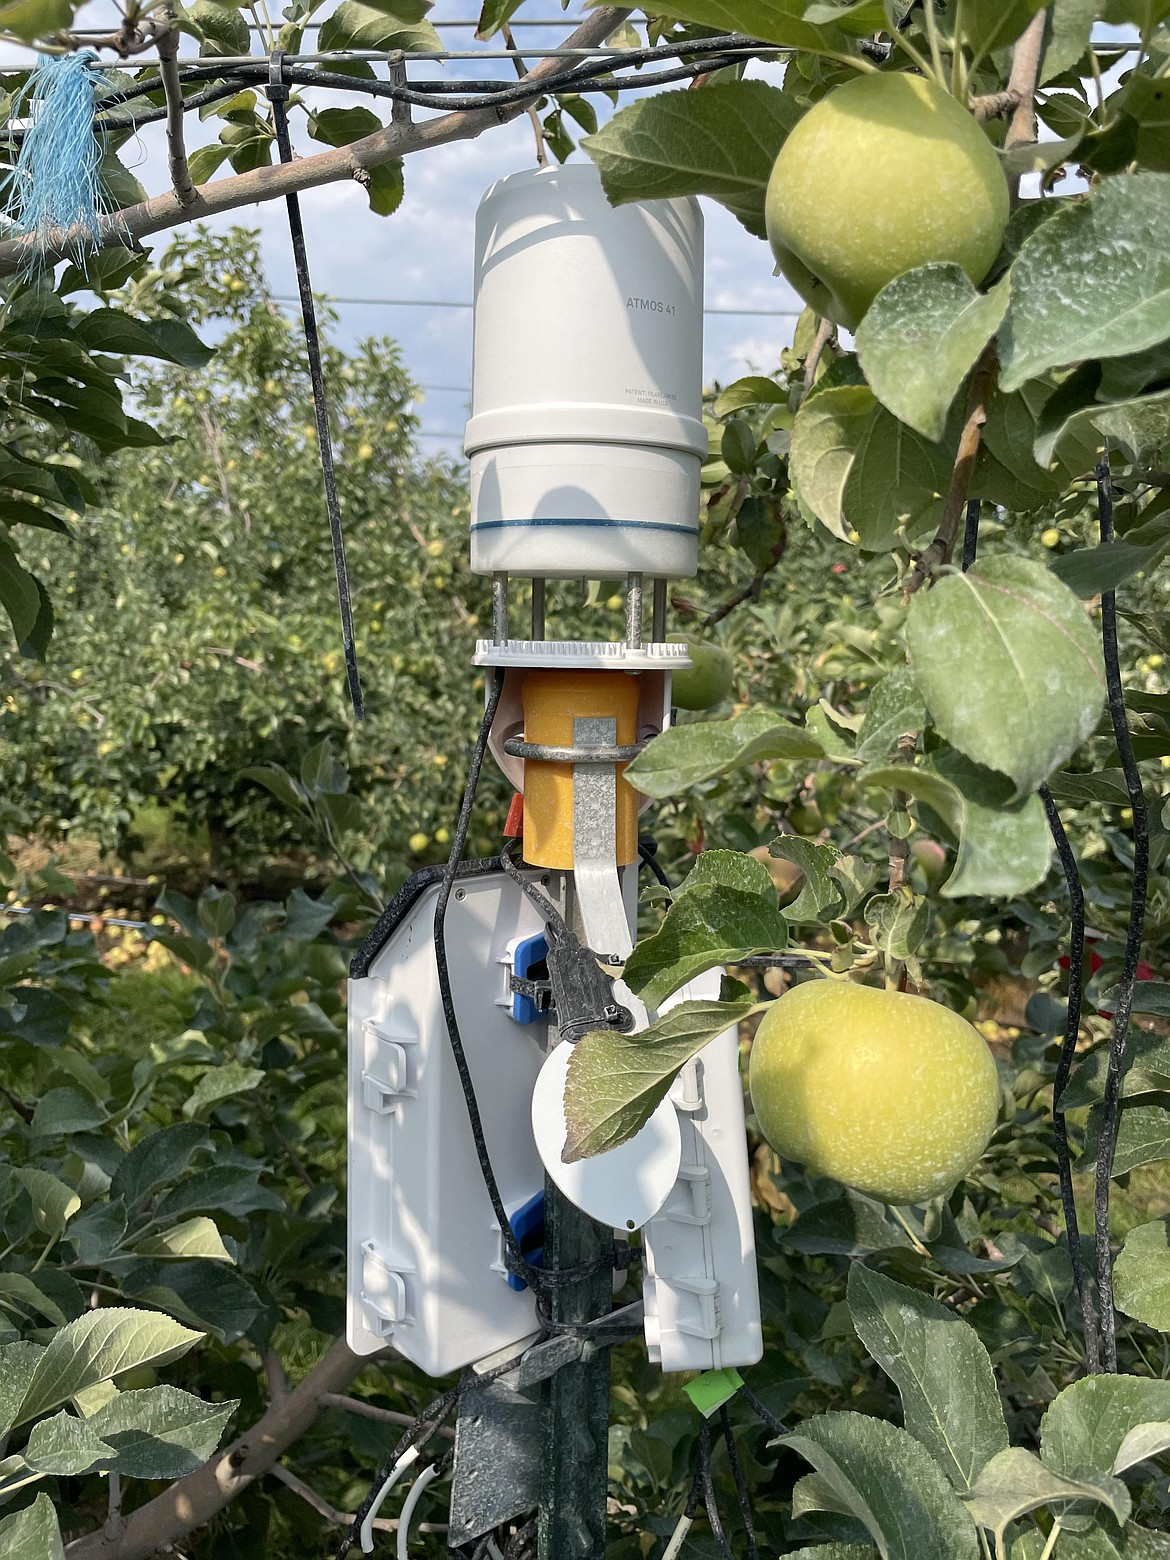 A small weather station measuring temperature, wind speed and relative humidity inside the Smart Orchard project.